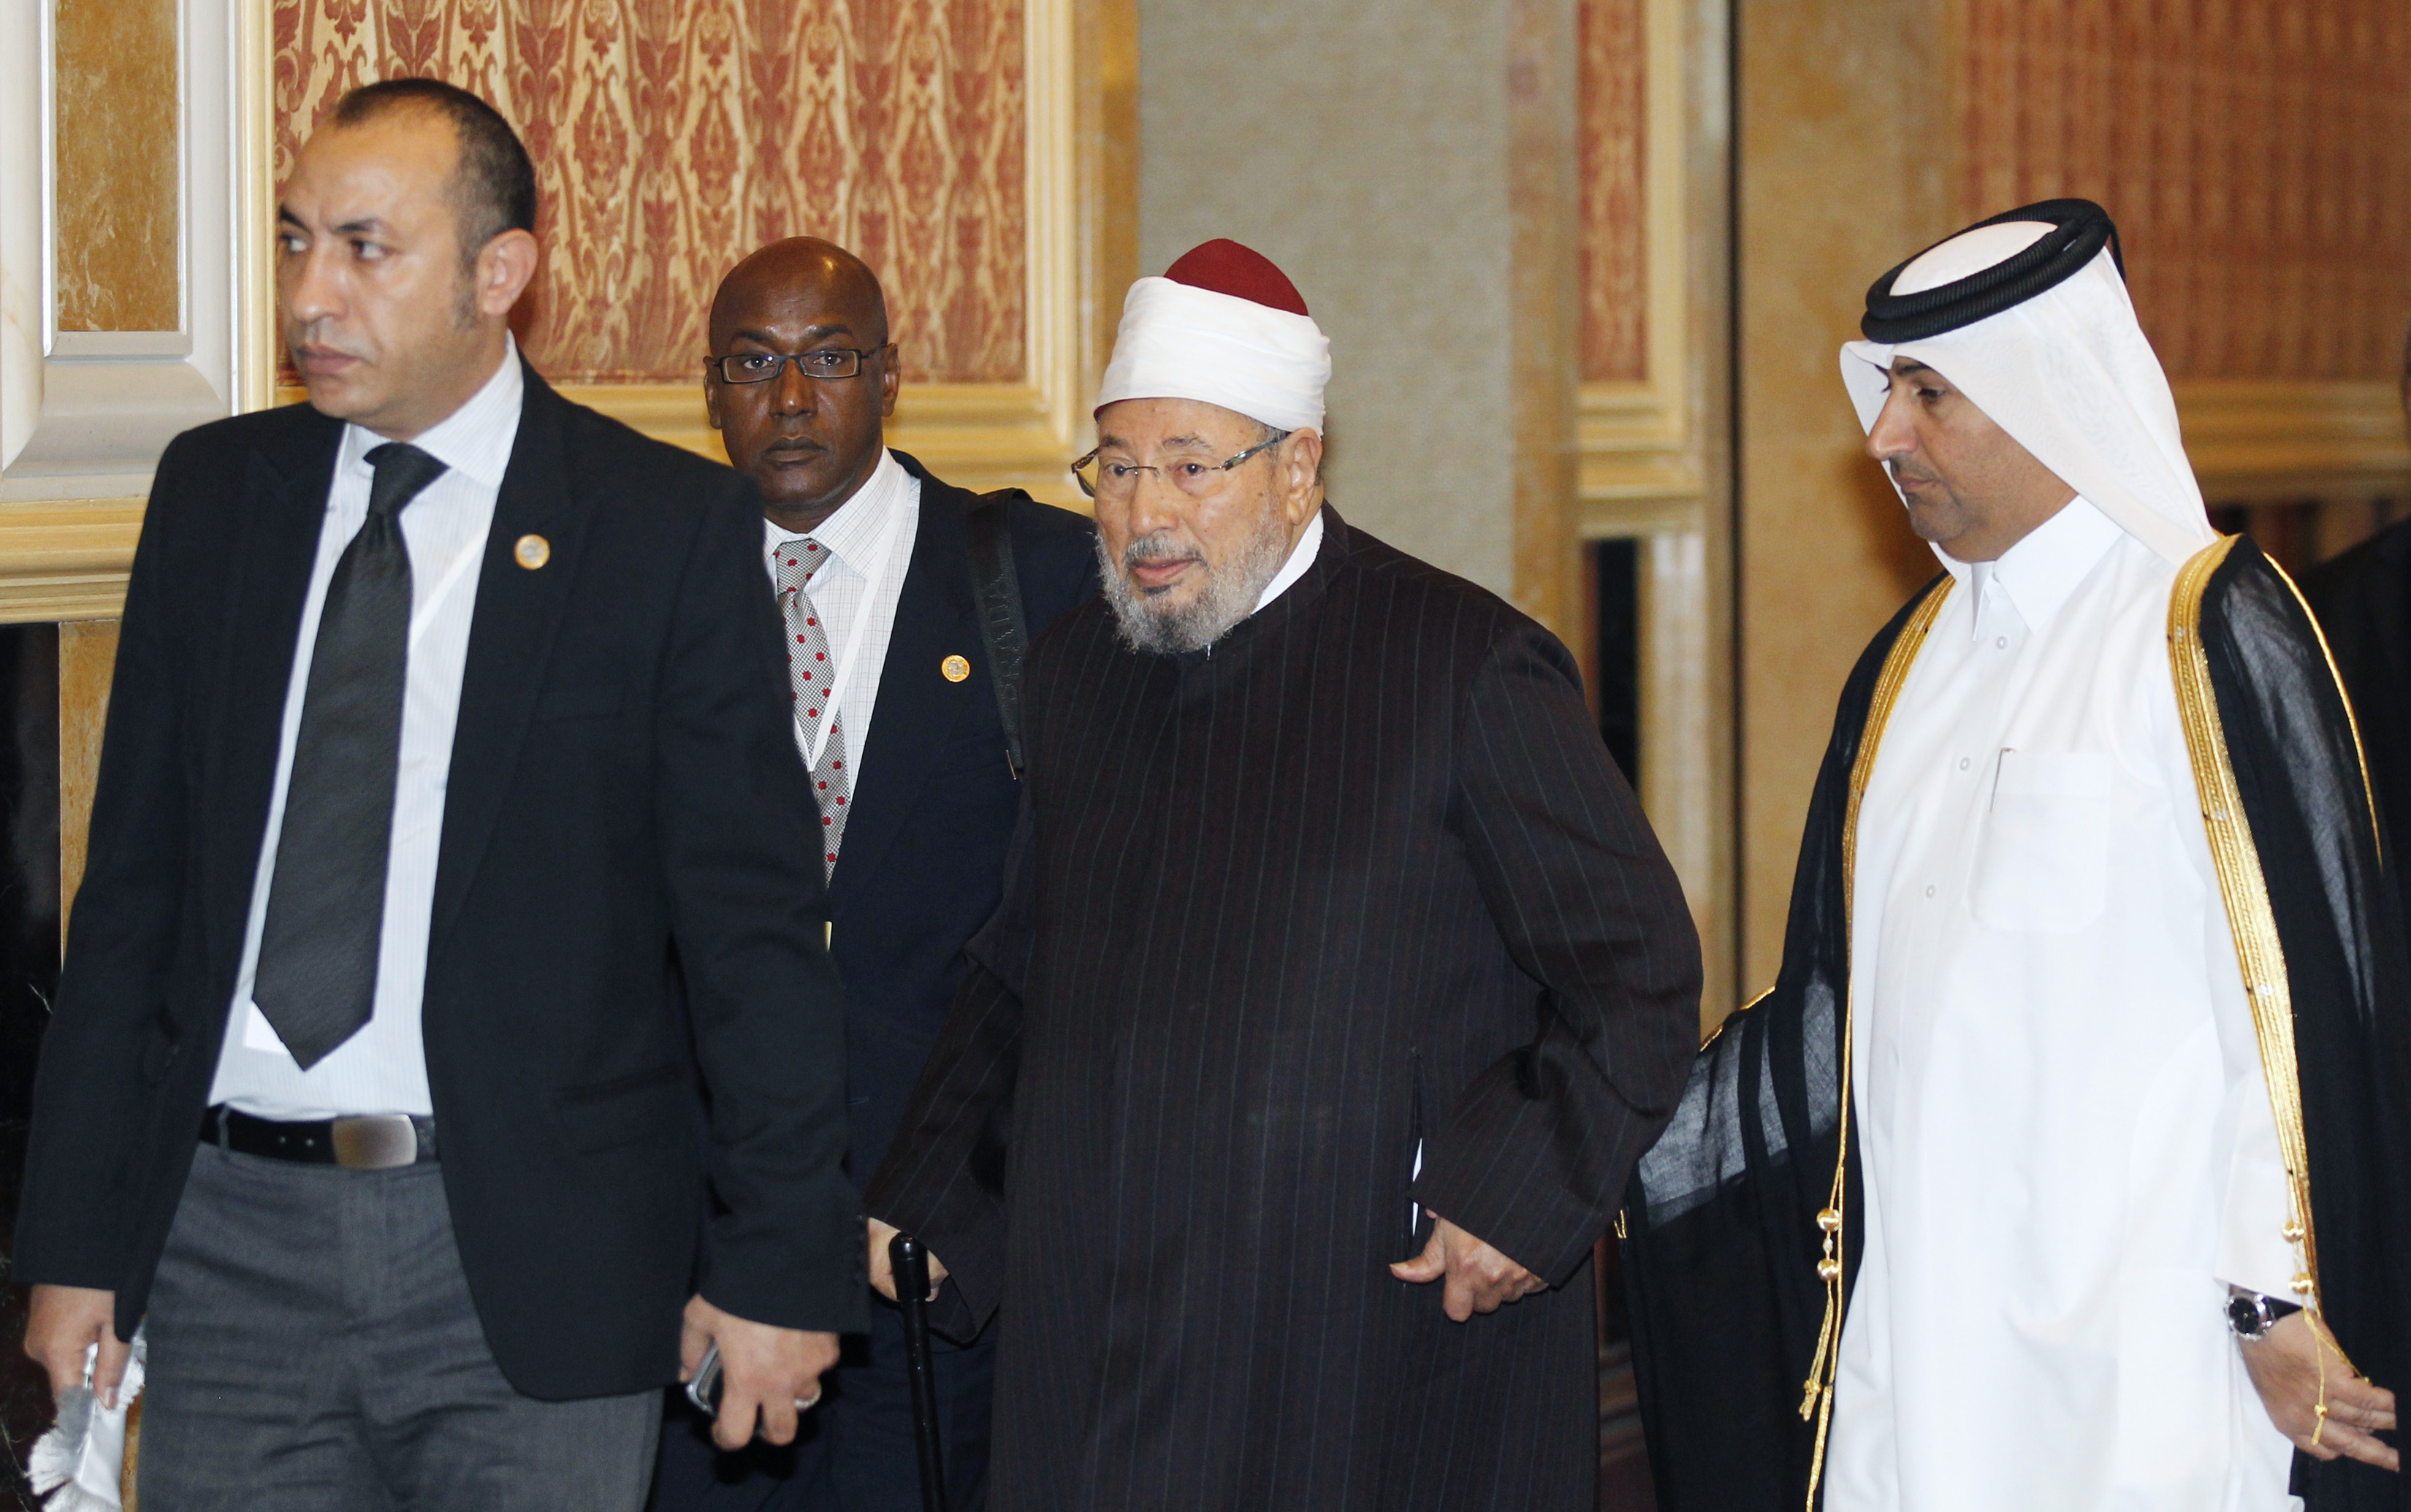 Sheikh Yusuf al-Qaradawi (C) arrives at the opening of the International Conference on Jerusalem in Doha February 26, 2012. (Photo by REUTERS/Mohammed Dabbous)